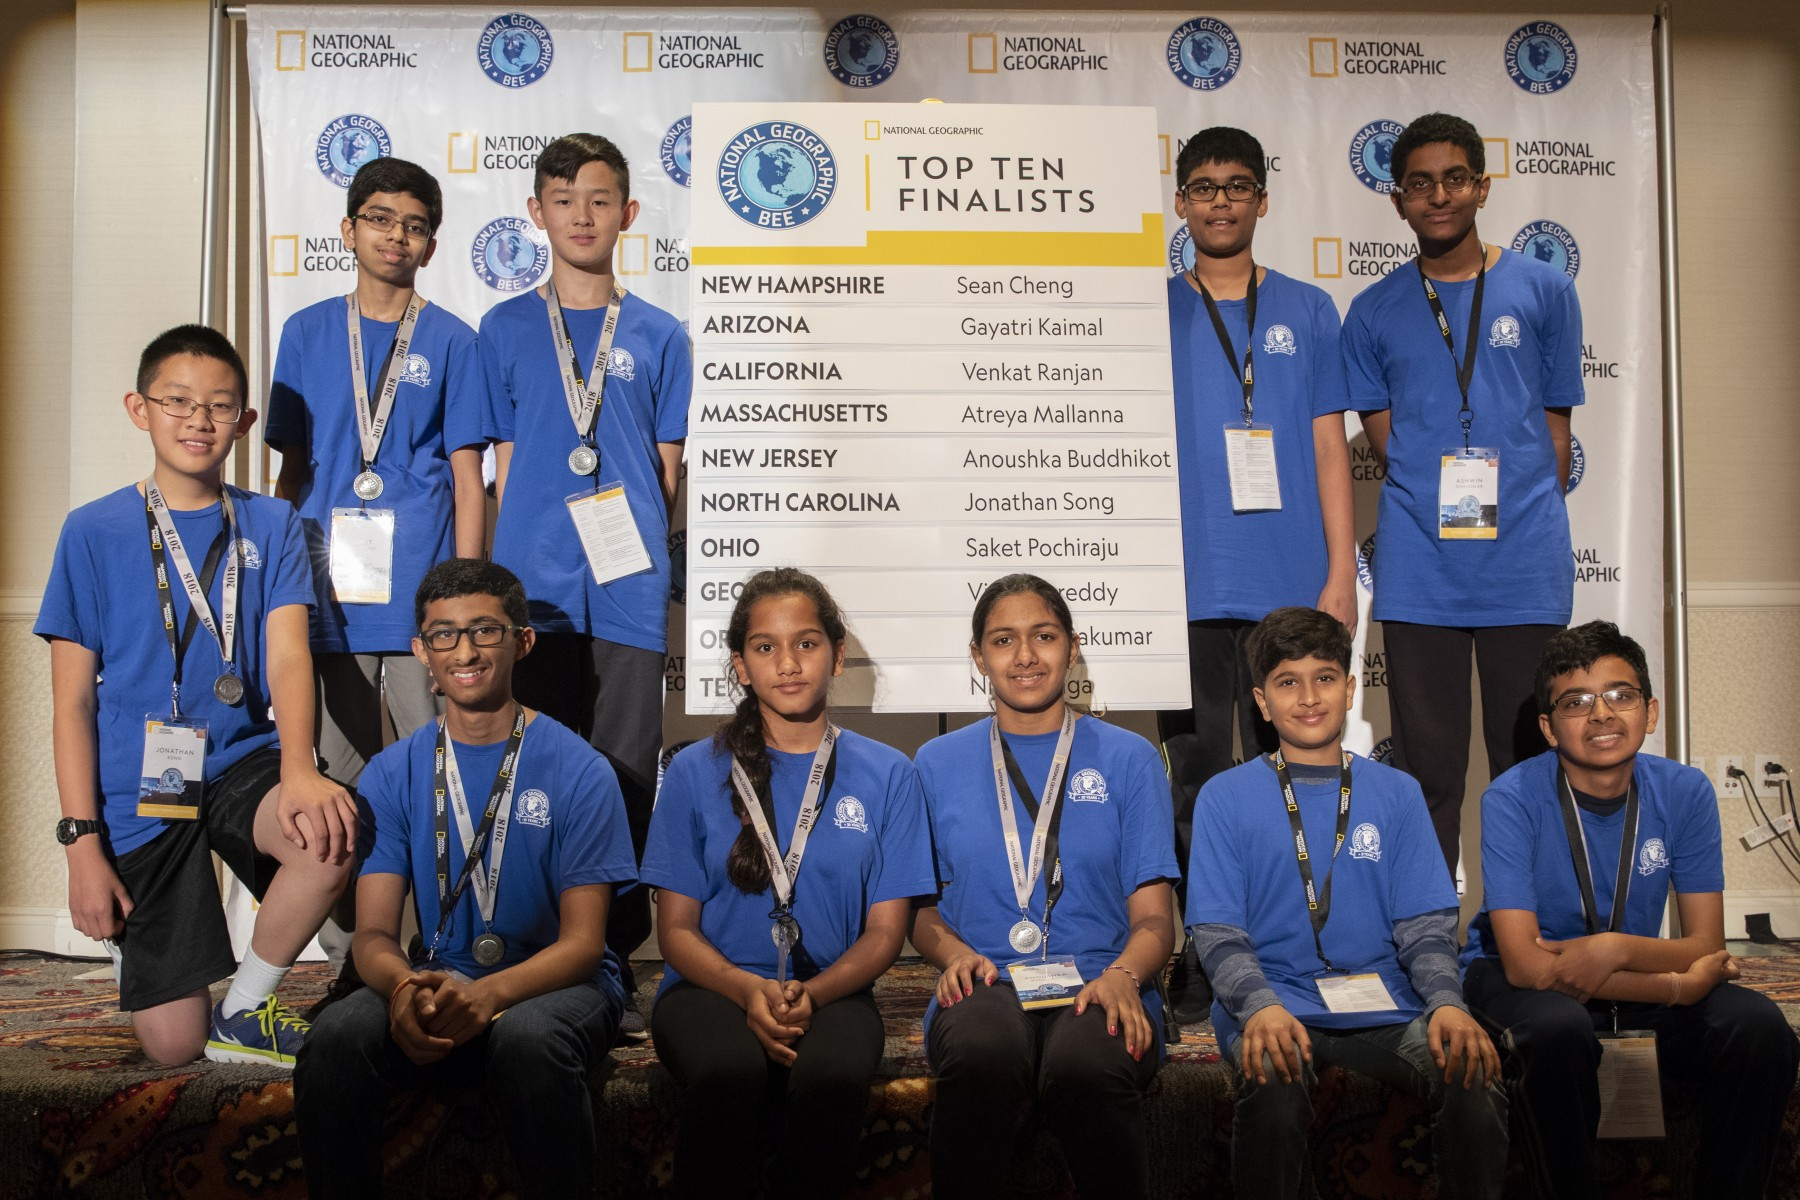 These top 10 finishers who competed in today's preliminary round of the 2018 National Geographic Bee held in Washington, D.C., will take part in the final round of the competition on Wednesday, May 23. They are (top row, left to right), Jonathan Song of North Carolina, Saket Pochiraju of Ohio, Sean Cheng of New Hampshire, Nihar Janga of Texas and Ashwin Sivakumar of Oregon (bottom row, left to right) Vishal Sareddy of Georgia, Gayatri Kaimal of Arizona, Anoushka Buddhikot of New Jersey, Atreya Mallanna of Massachusetts and Venkat Ranjan of California.